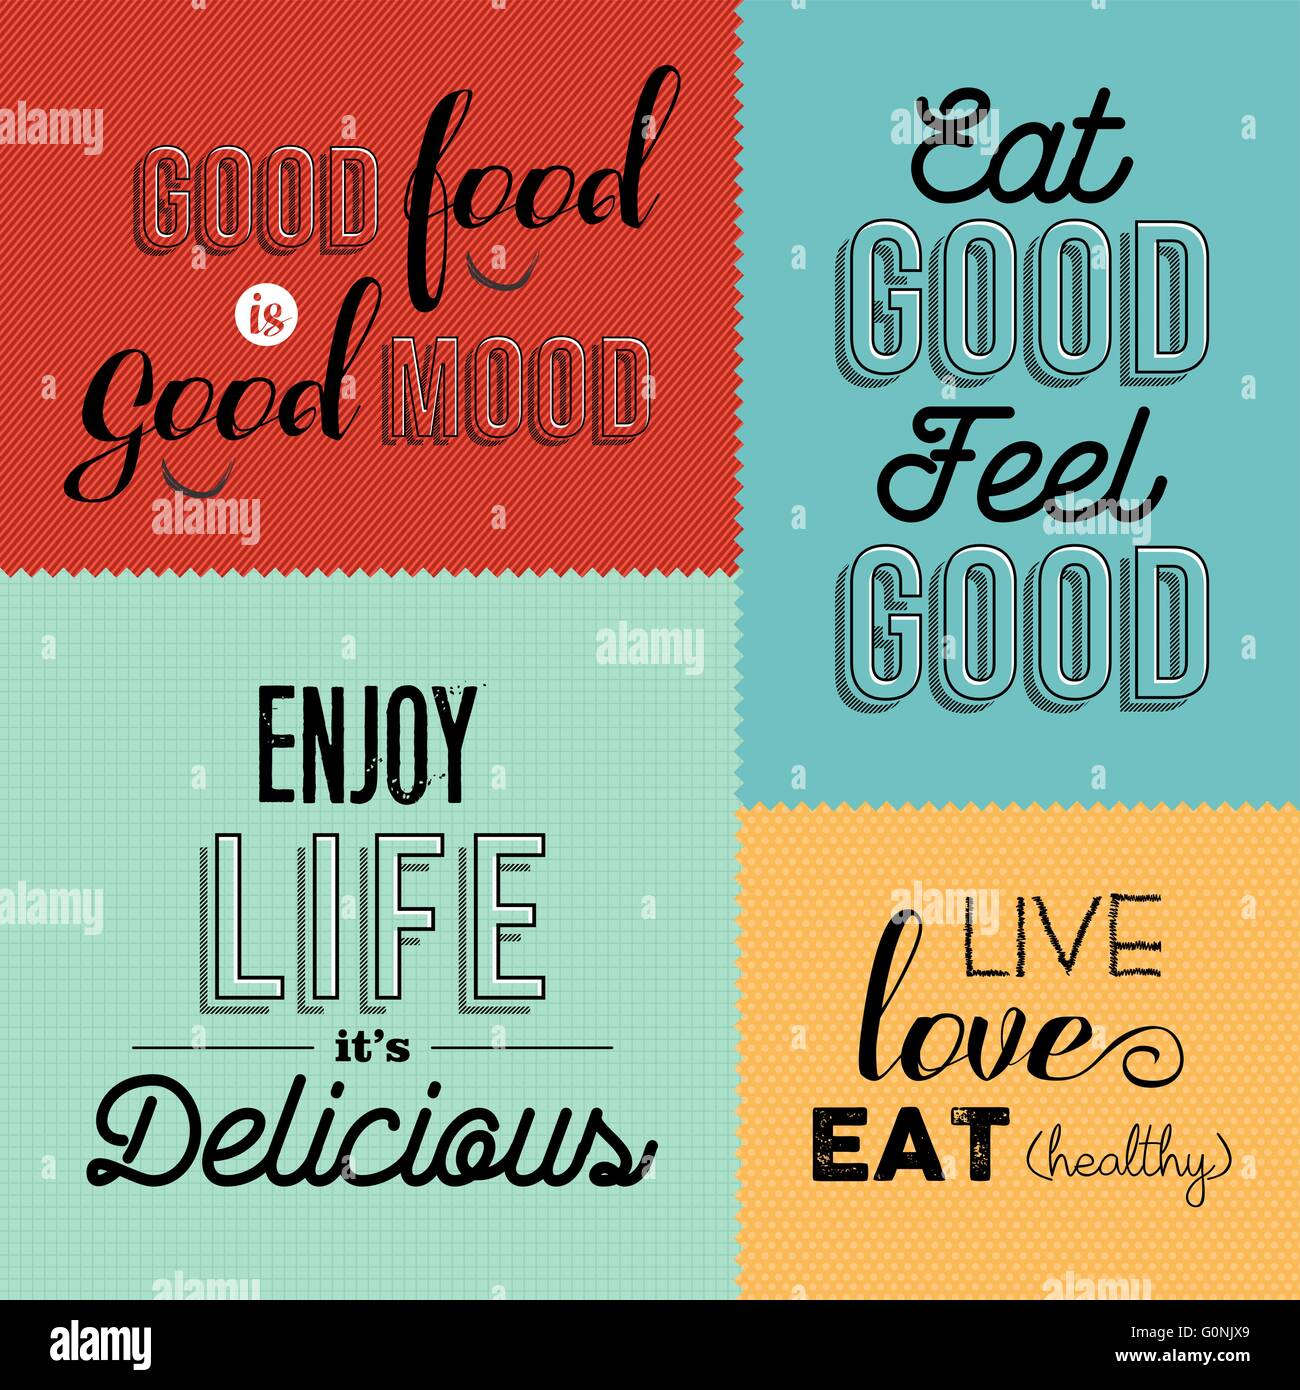 Set Of Vintage Food Quotes In Colorful Designs Ideal For Restaurant